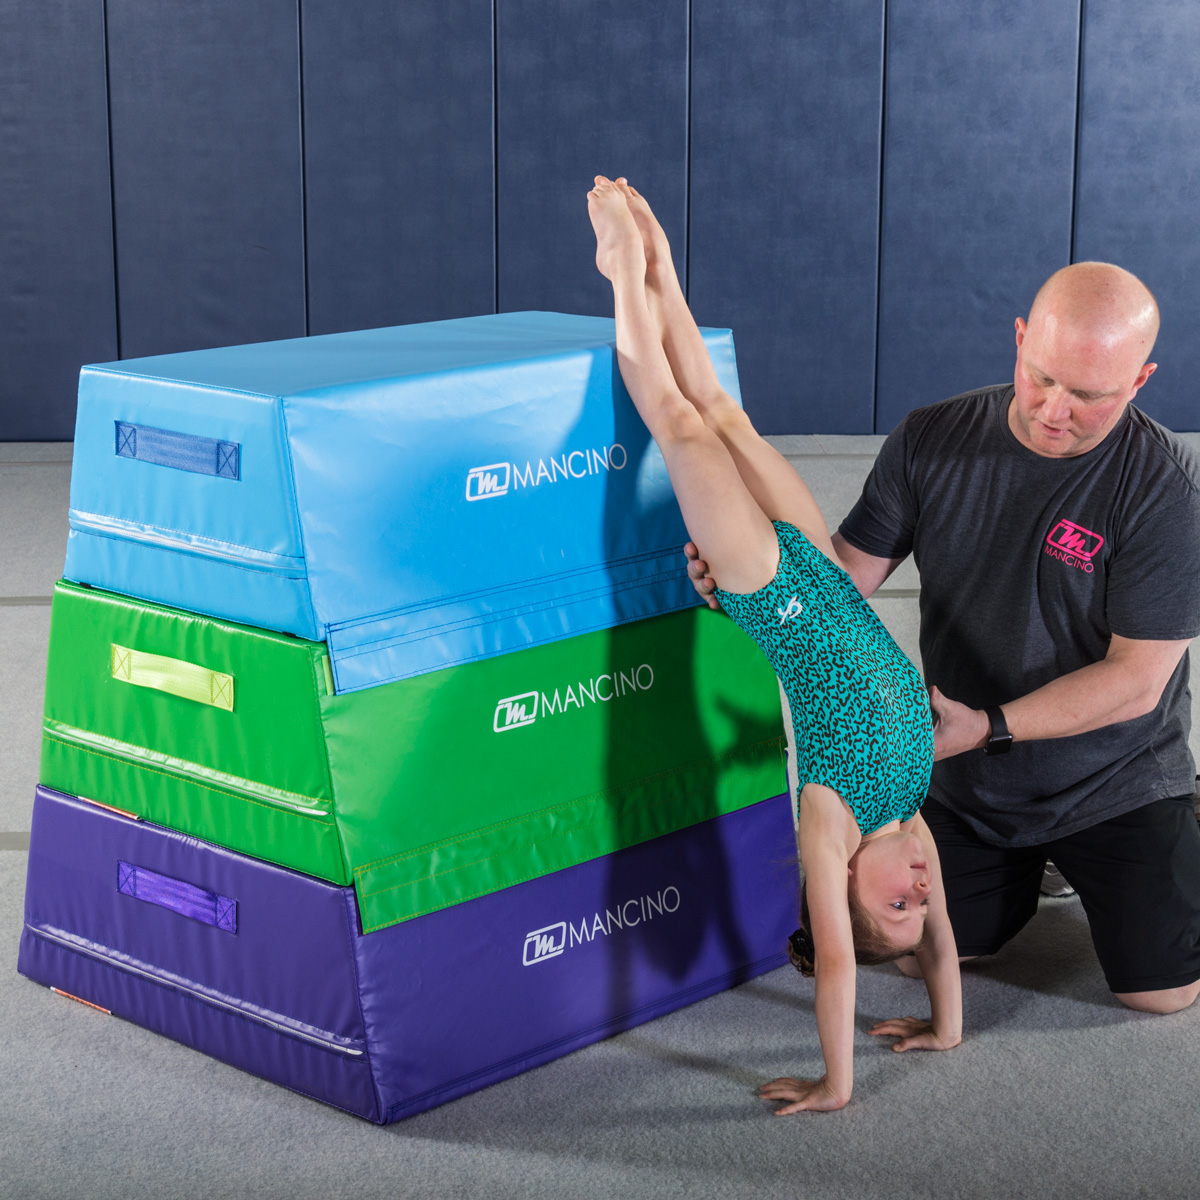 gymnastics coach training a student a handstand on a trapezoid training aid